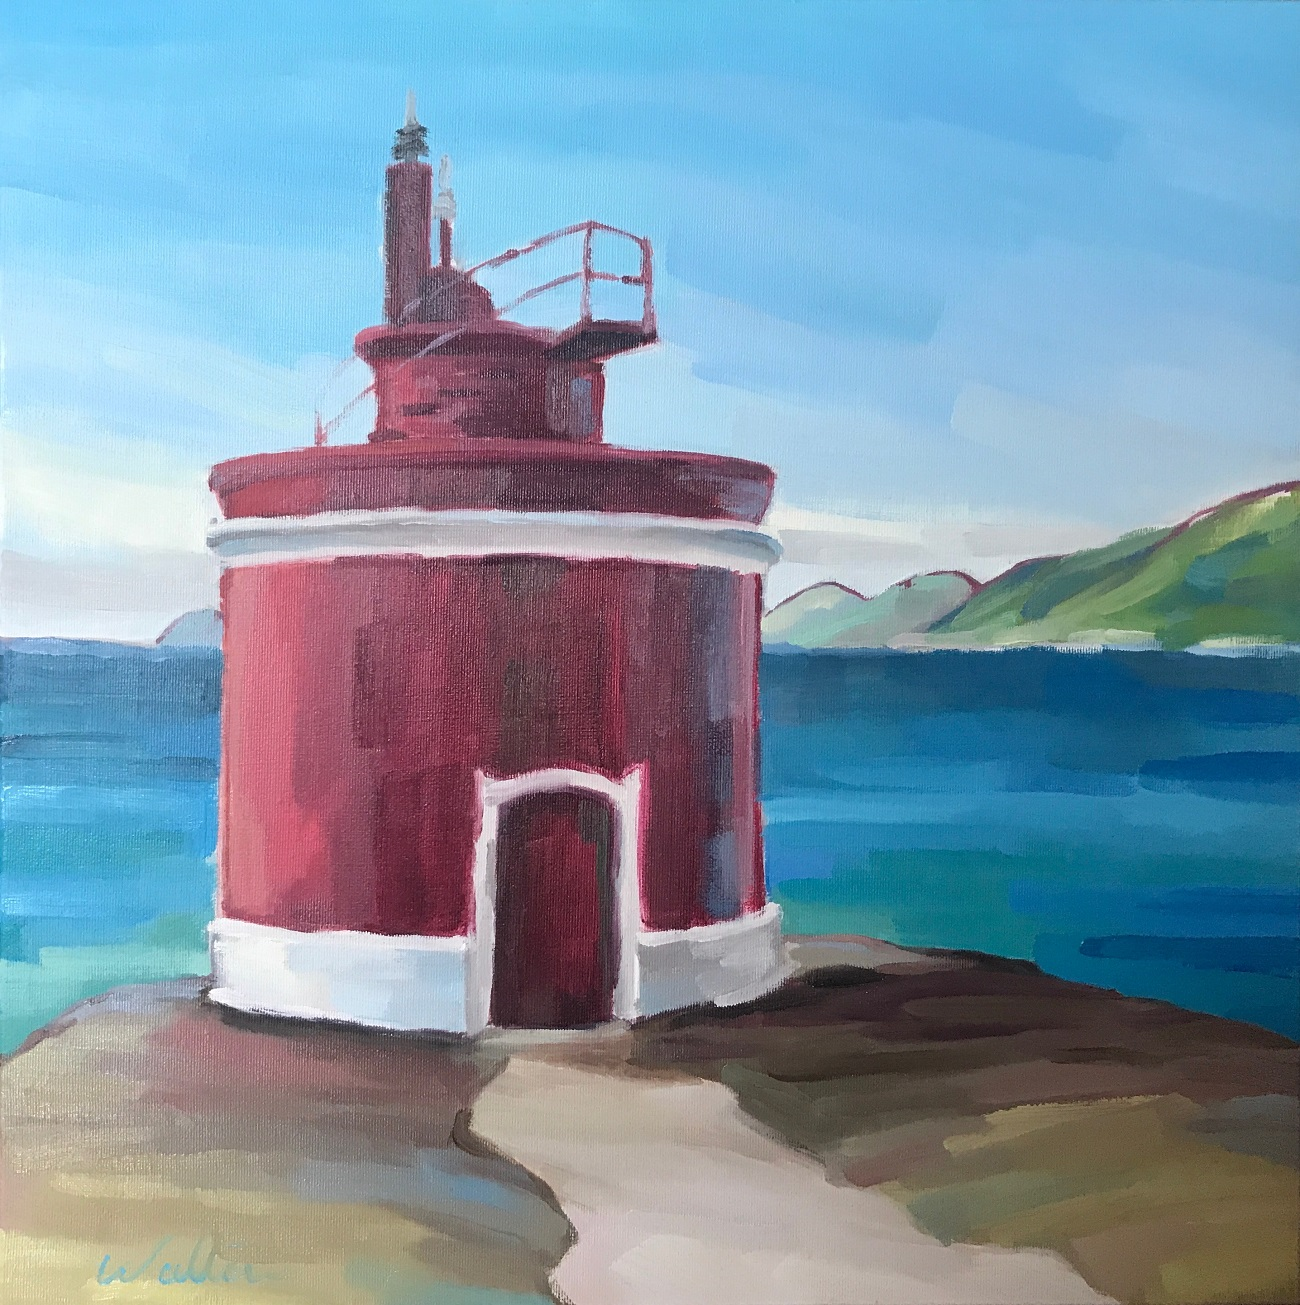 Art exhibition, painting lighthouse faro de Cabo Home Donon, Cangas, Galicia